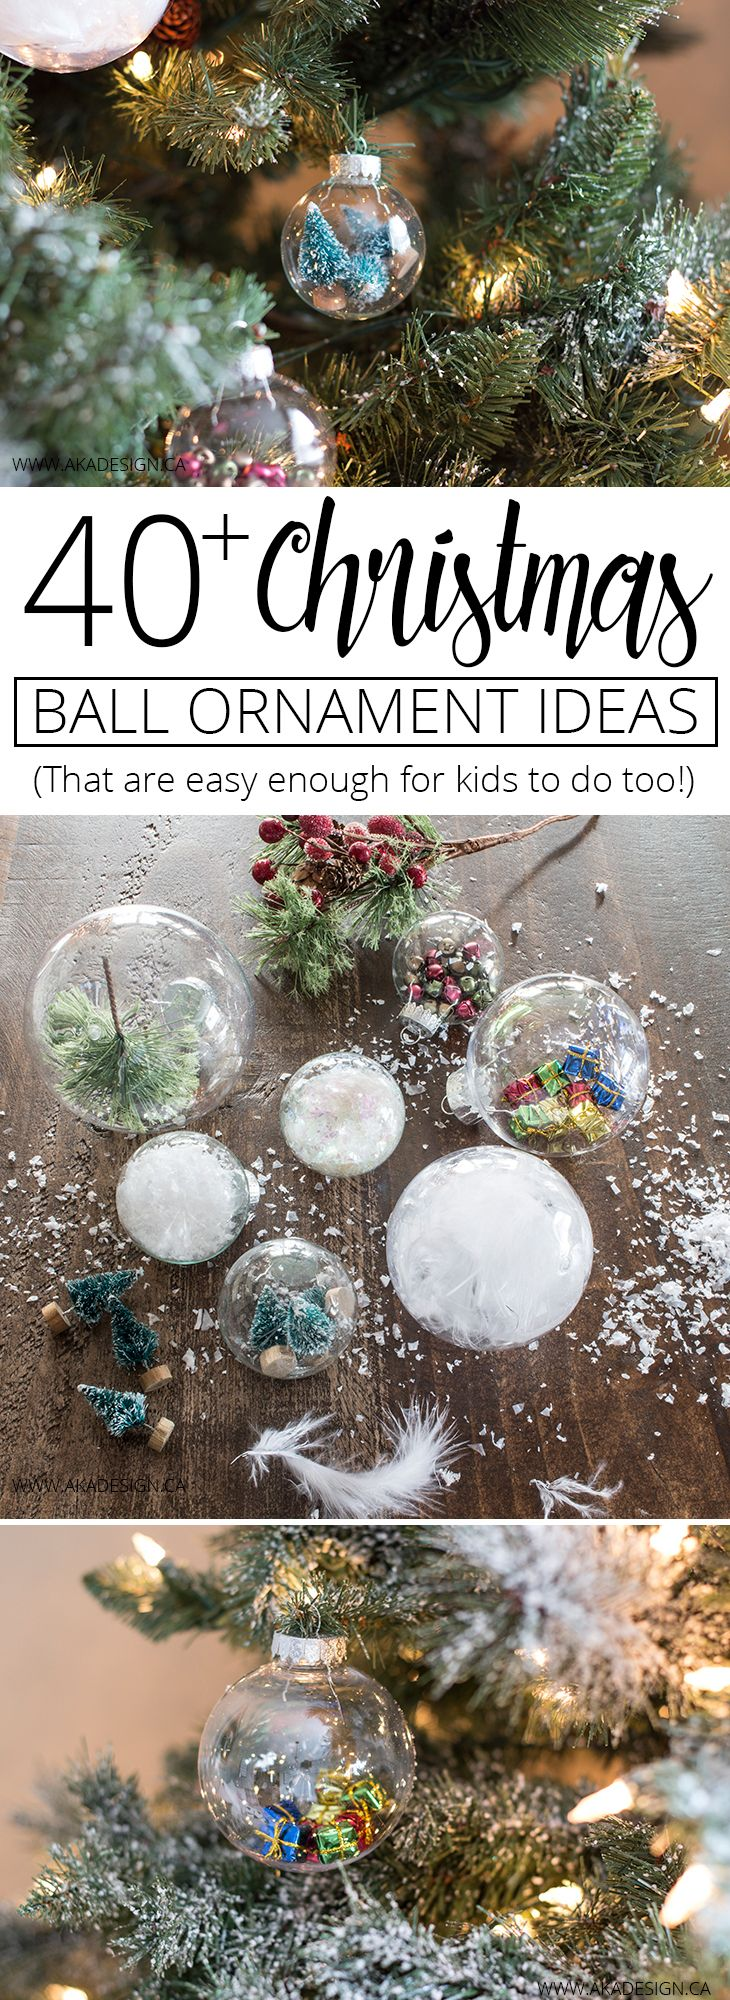 40+ Christmas Ball Ornament Ideas For You to Try This Year! (Plus ...